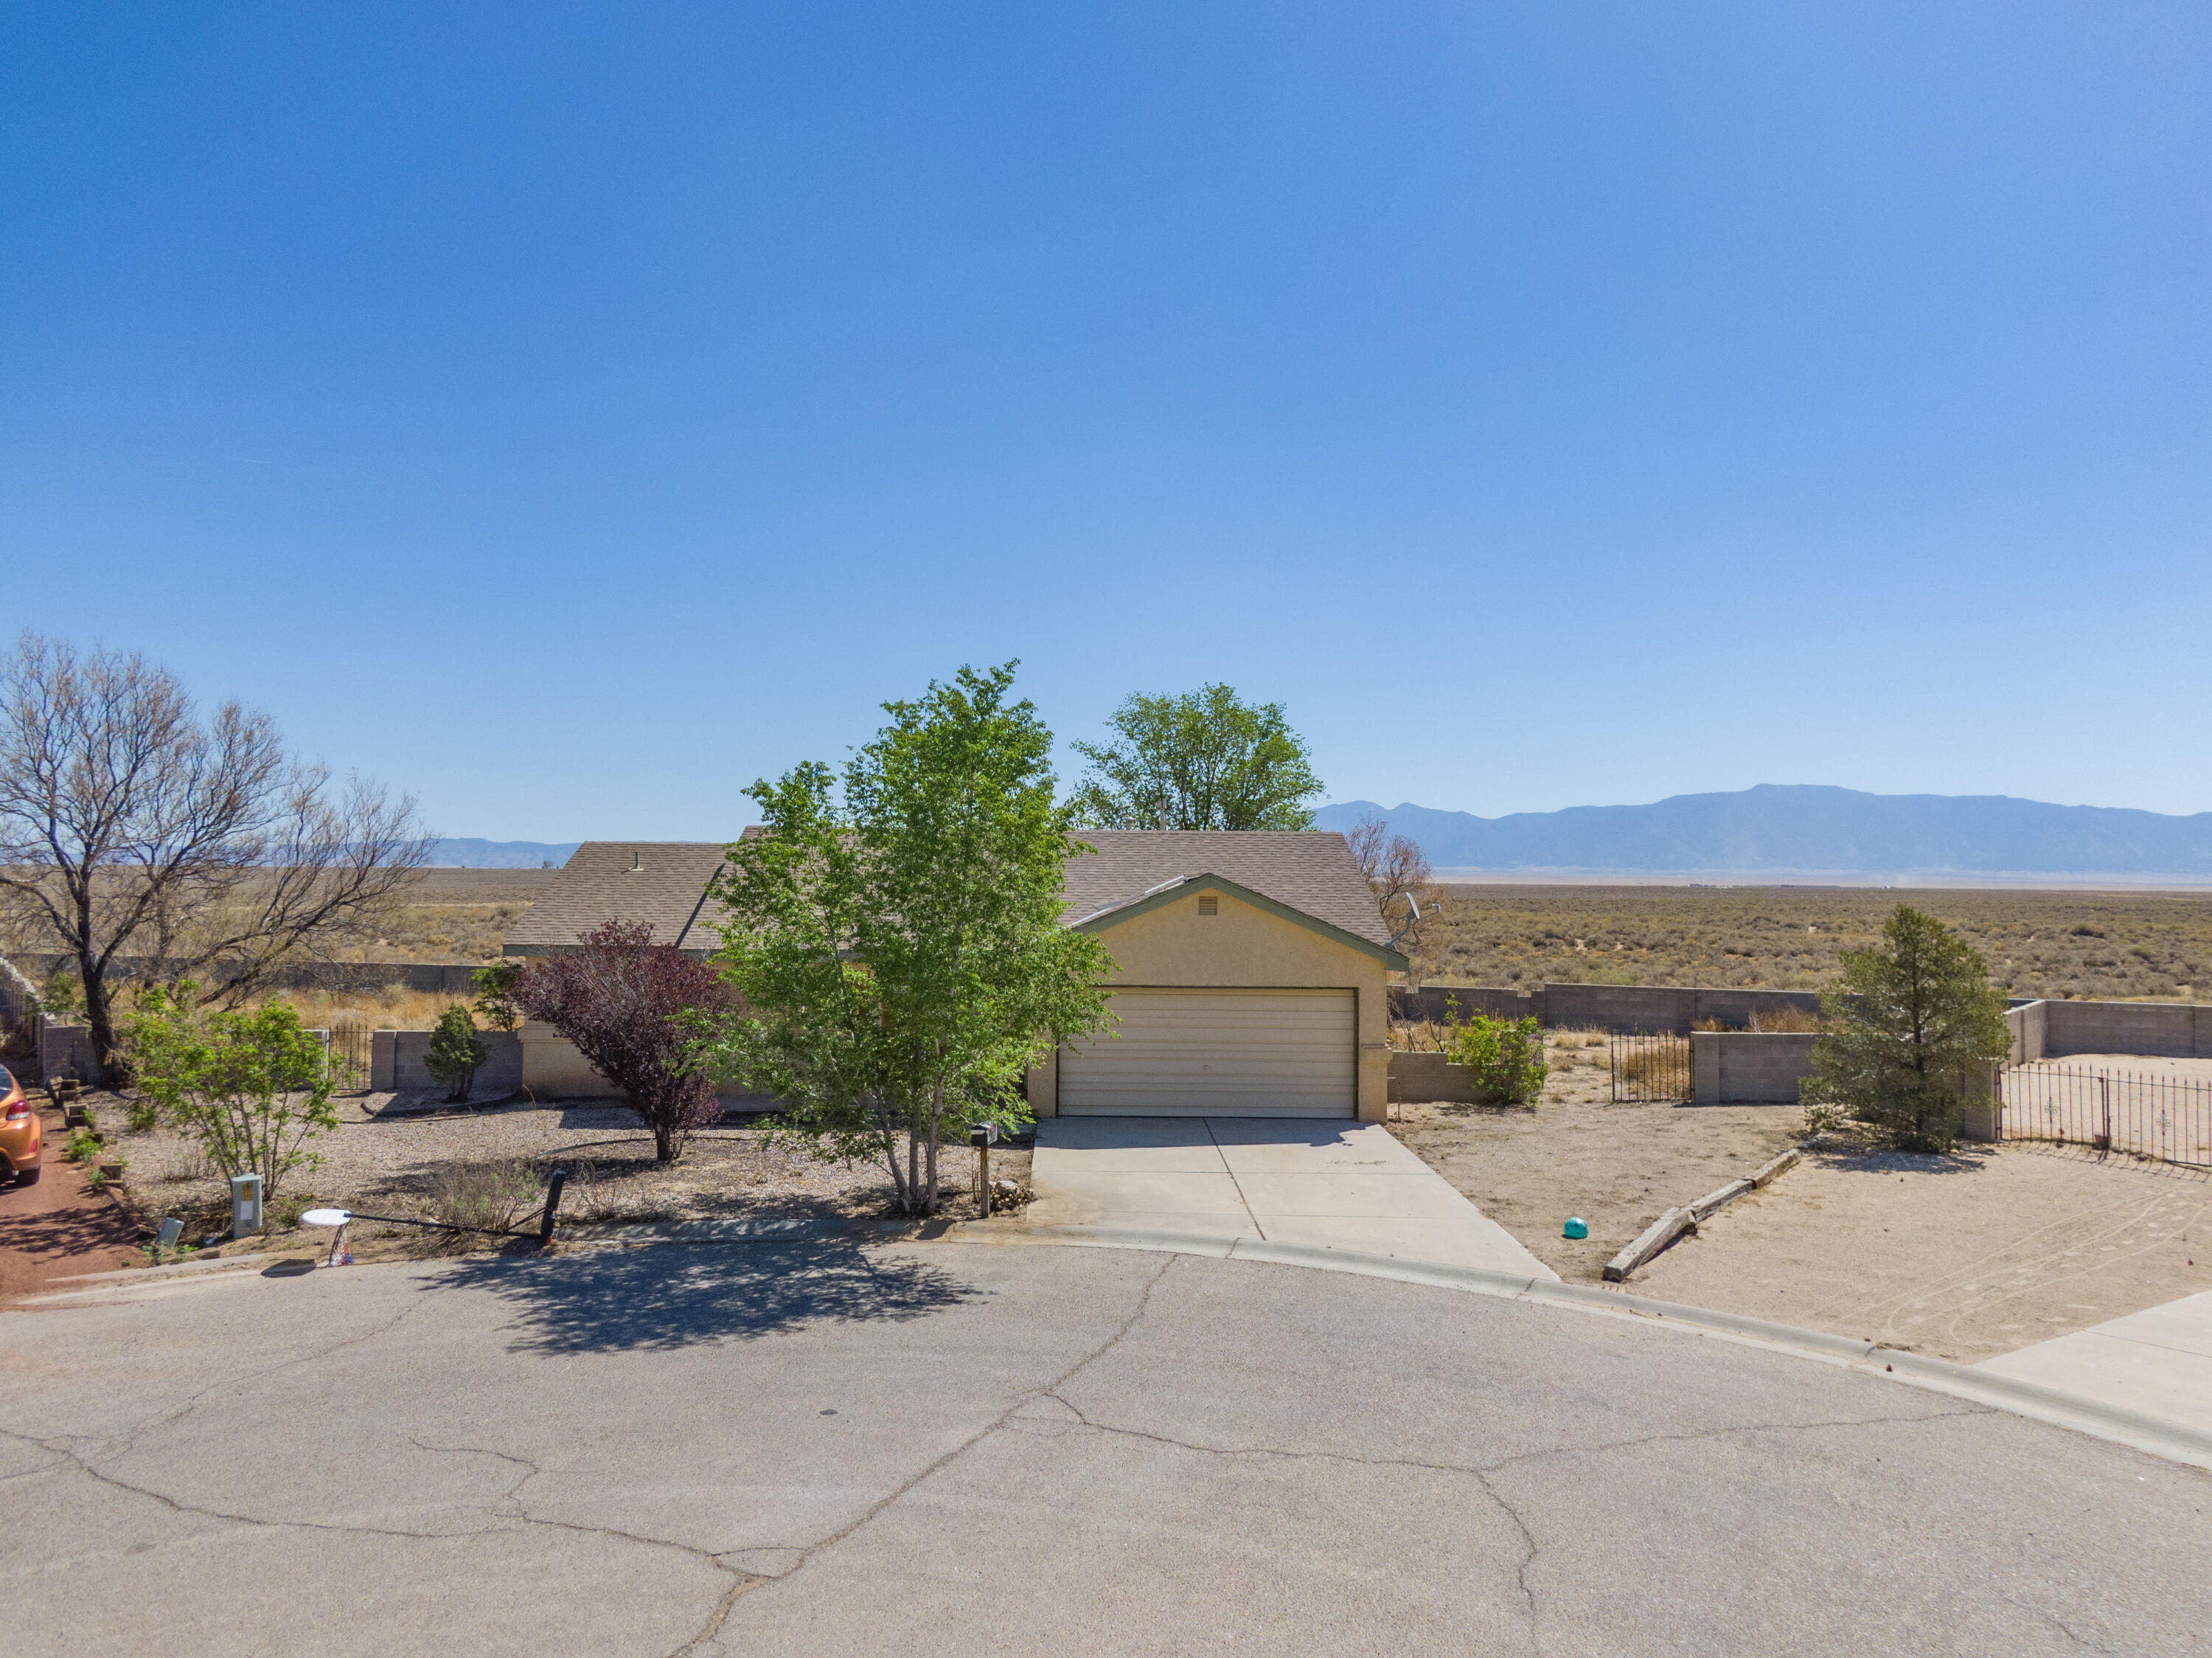 CASH ONLY. Welcome to this 3 Bedroom, 2 Bath, 2-Car Garage, Single-Story Home in Los Lunas! Situated on a Quiet Cul-de-sac on a Large .38-Acre Lot with *Stunning, Panoramic, Unobstructed Views of the Manzano Mountains*, 21 Hermanos Court presents you with a Rare and Promising Investment Opportunity. Fix & Flip, or, Bring Your Paintbrush + Imagination to Customize this Home as you wish. Home to be sold as-is, where is, with all faults. CASH ONLY.